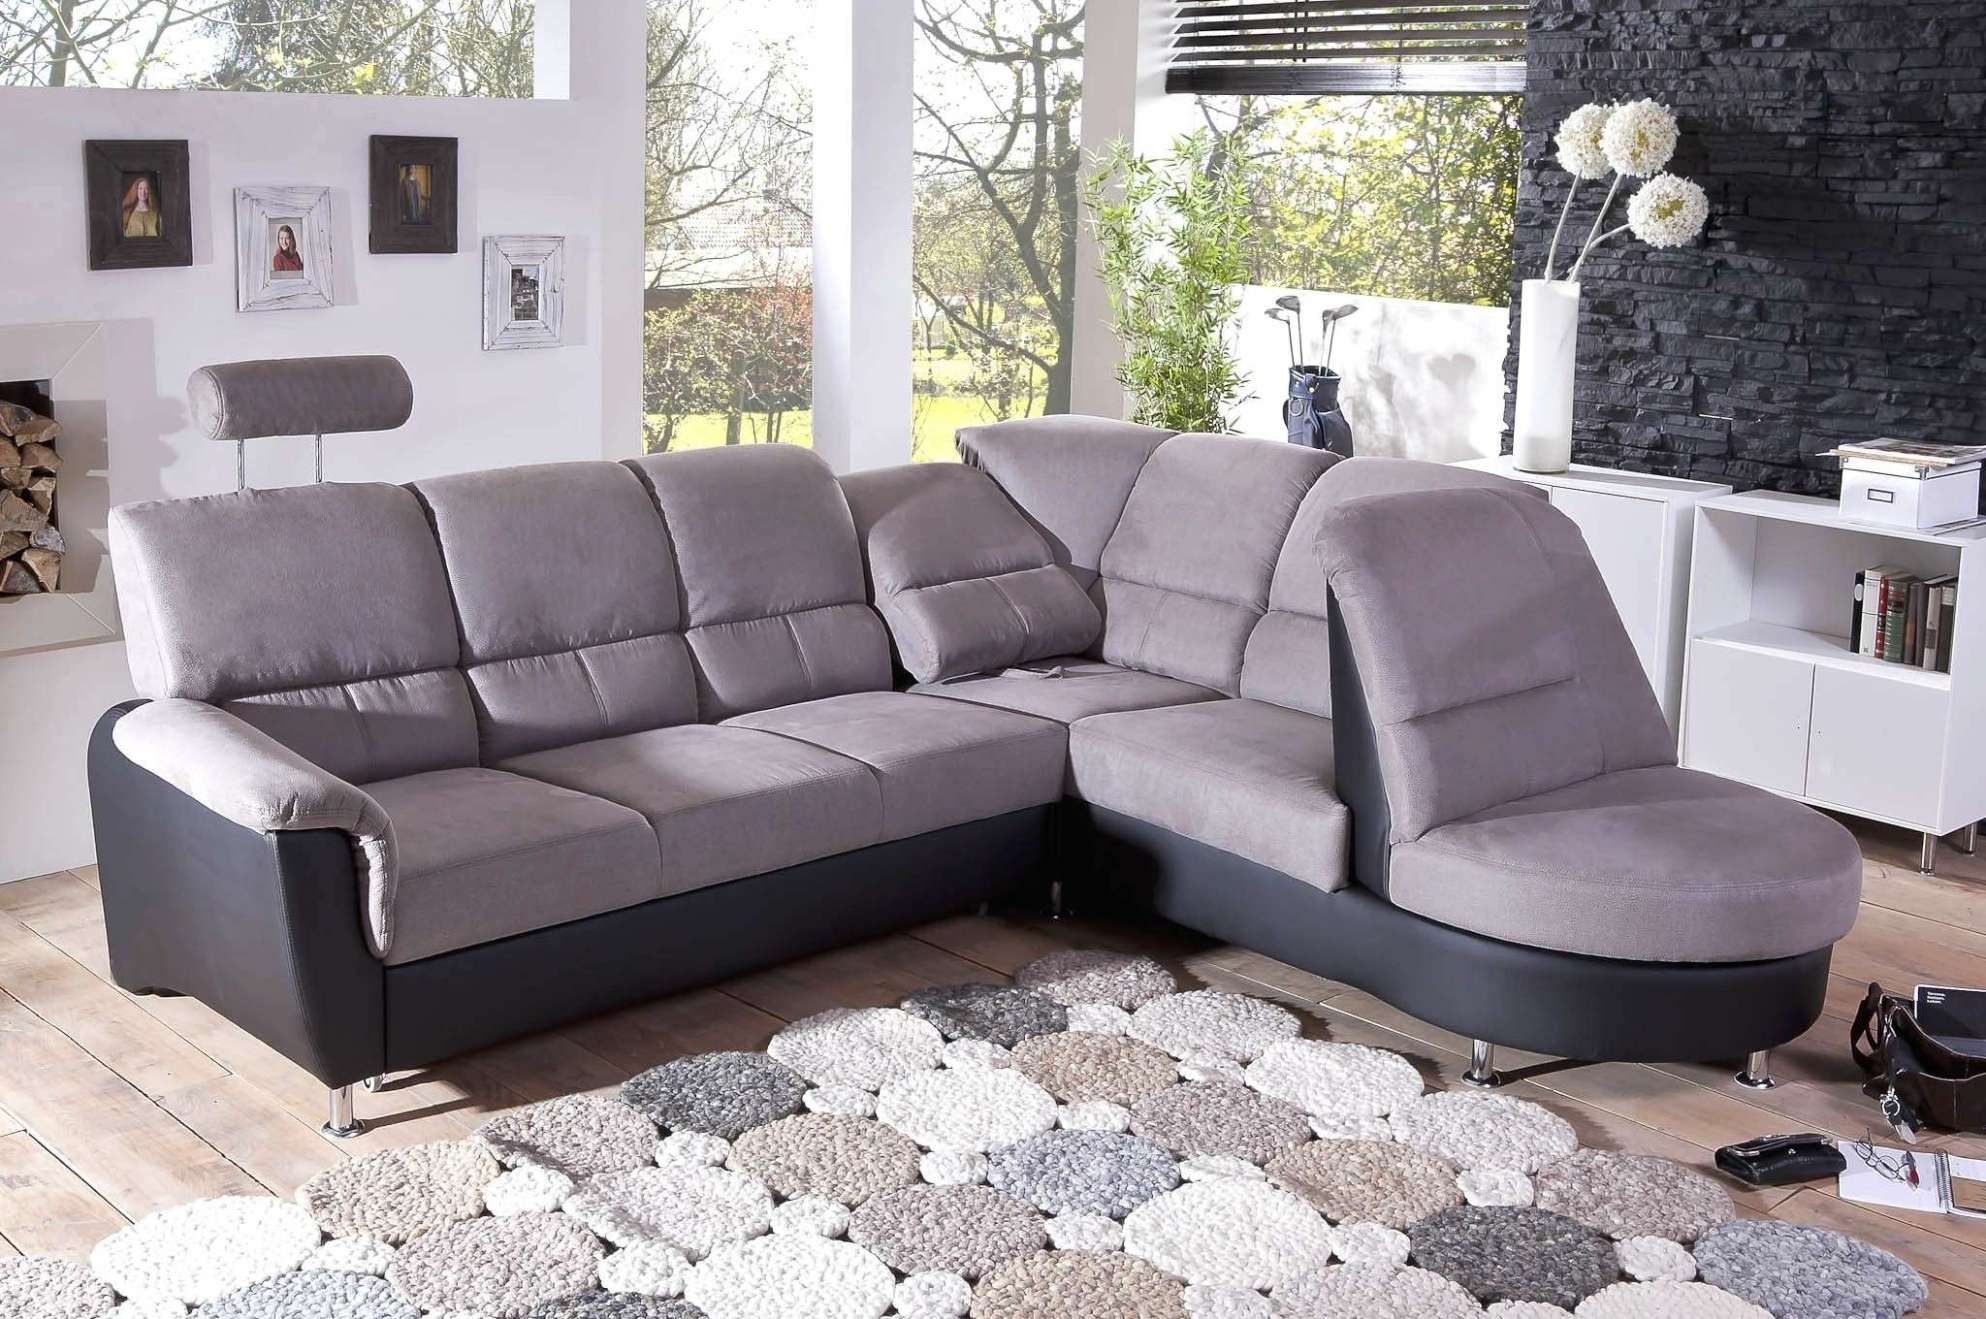 Ecksofa Kaufen Gunstig Ecksofa Leder Gunstig Yct Projekte In 2020 Sofa Design Home Decor Home